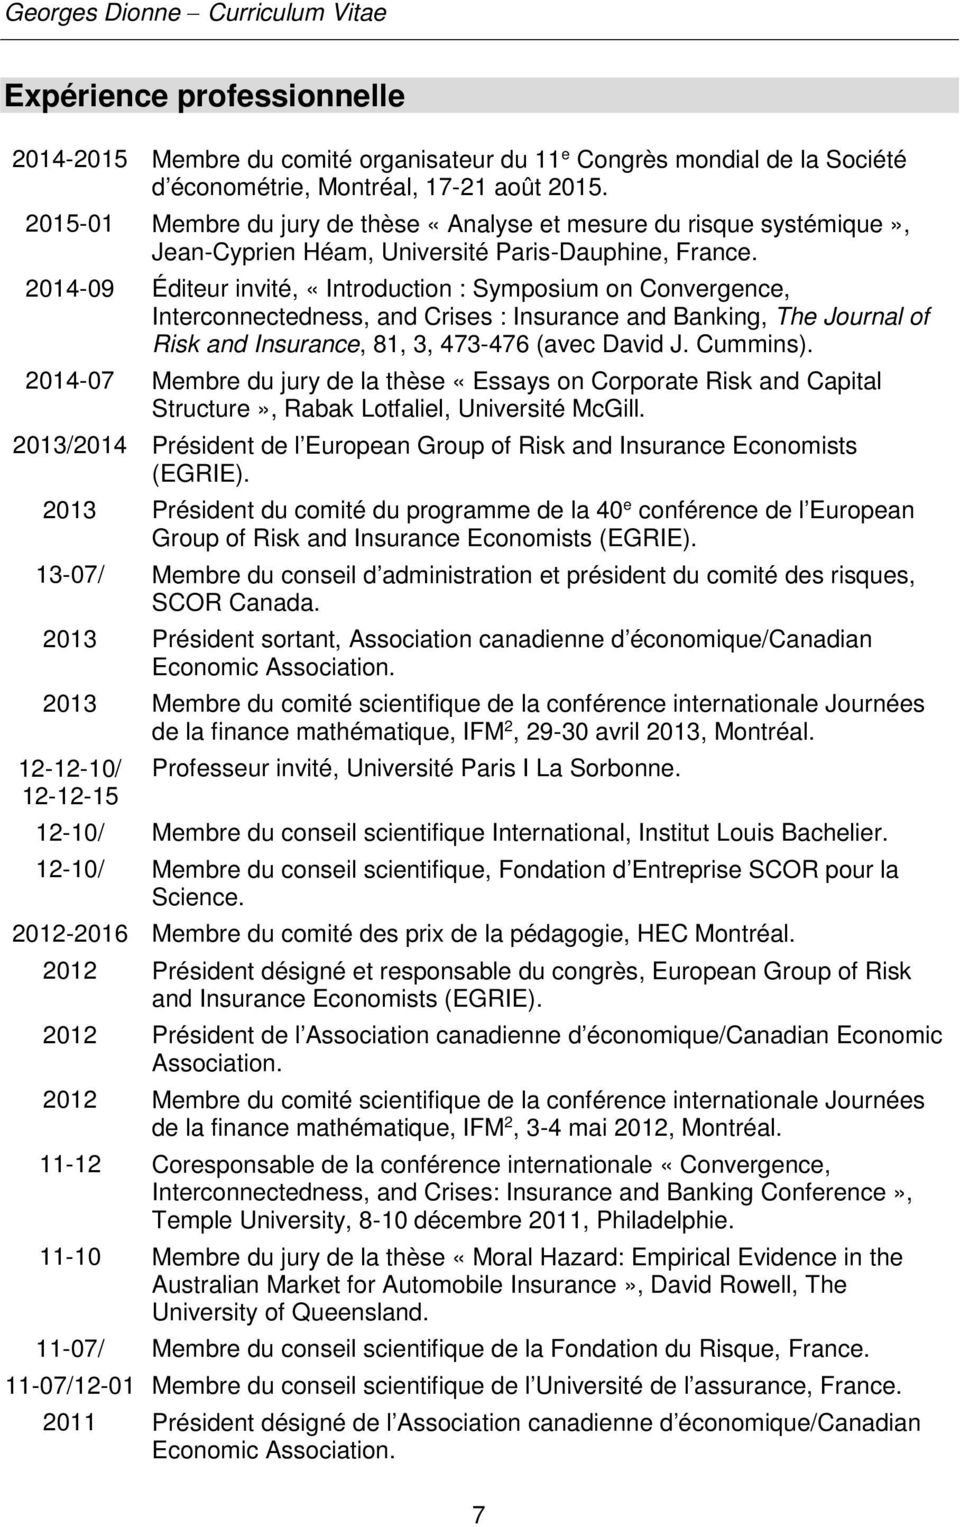 2014-09 Éditeur invité, «Introduction : Symposium on Convergence, Interconnectedness, and Crises : Insurance and Banking, The Journal of Risk and Insurance, 81, 3, 473-476 (avec David J. Cummins).